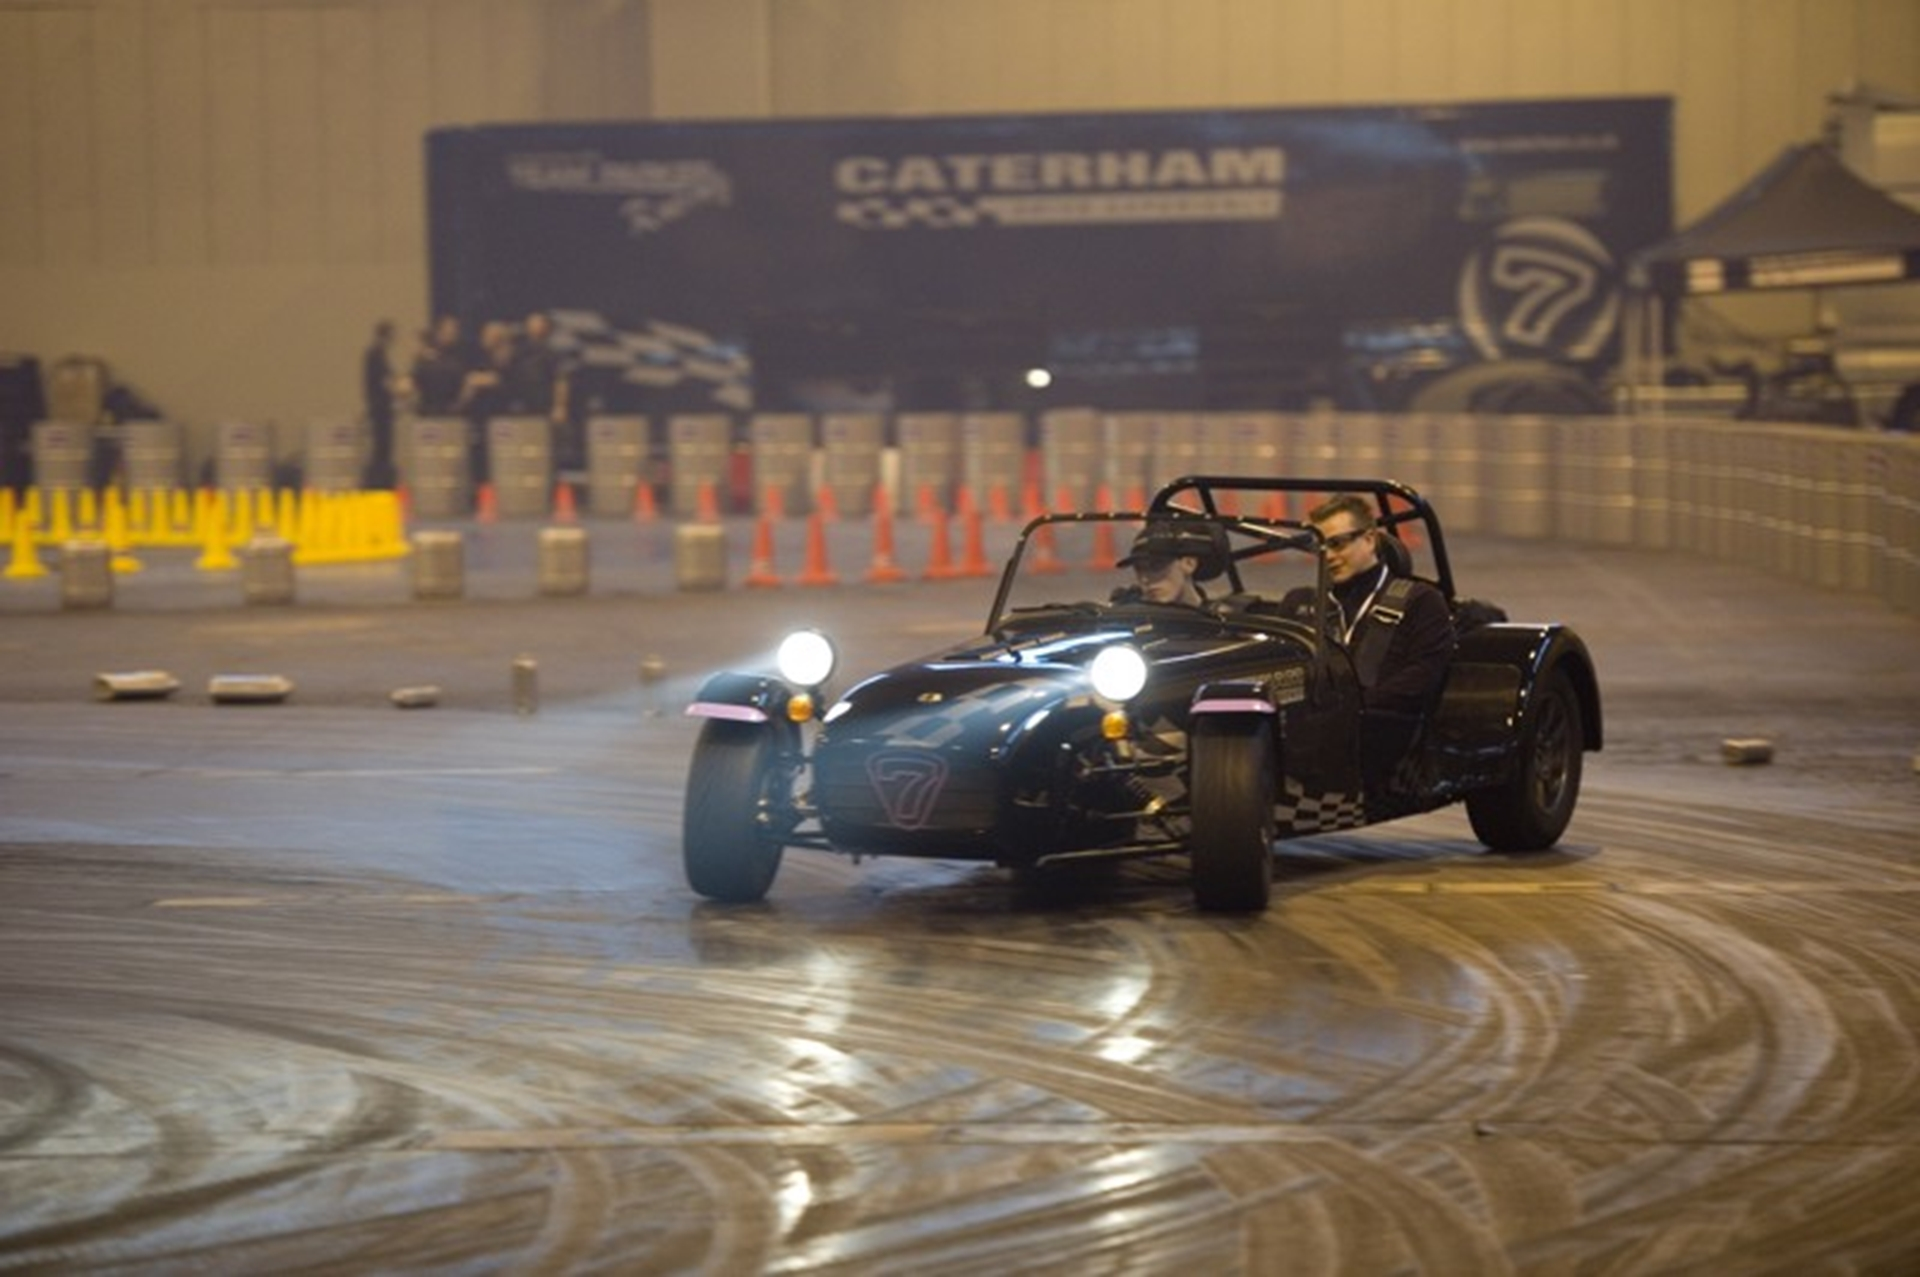 Caterham set to thrill at Autosport International